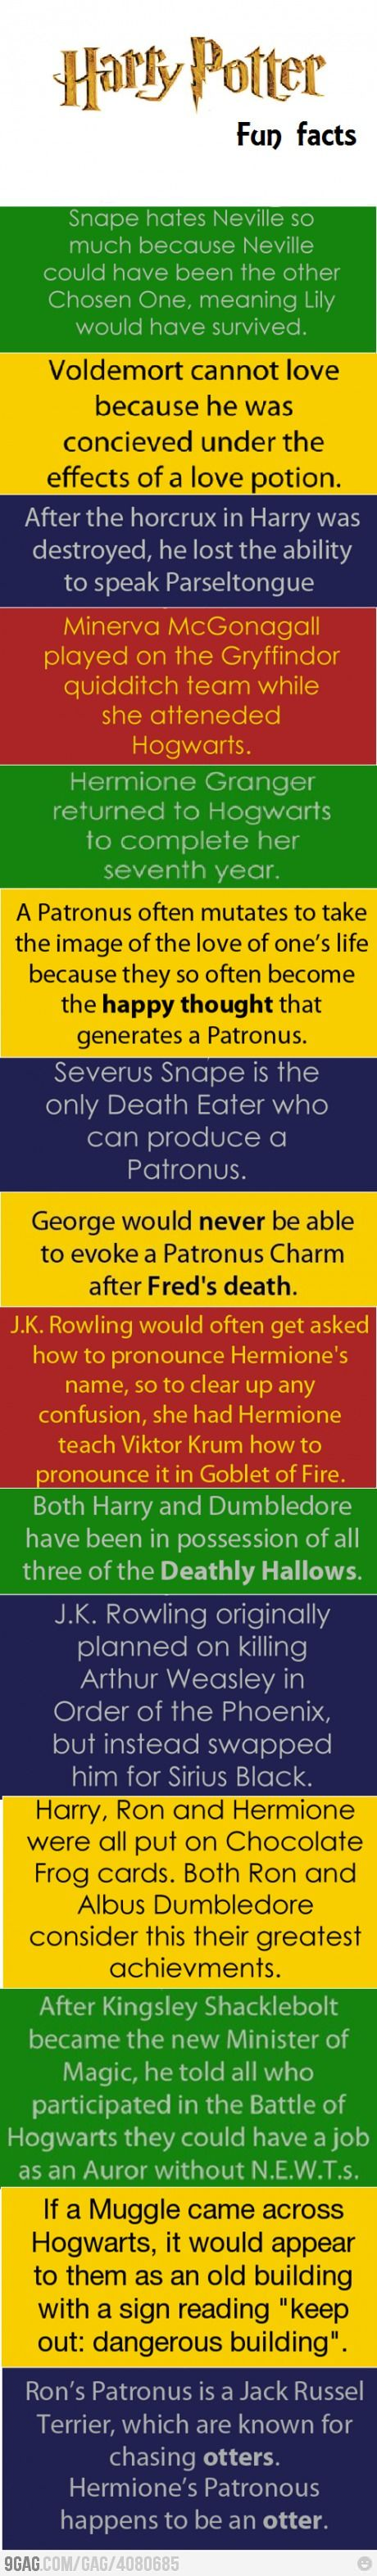 Harry Potter Book Facts : Best images about movies music books tv shows on